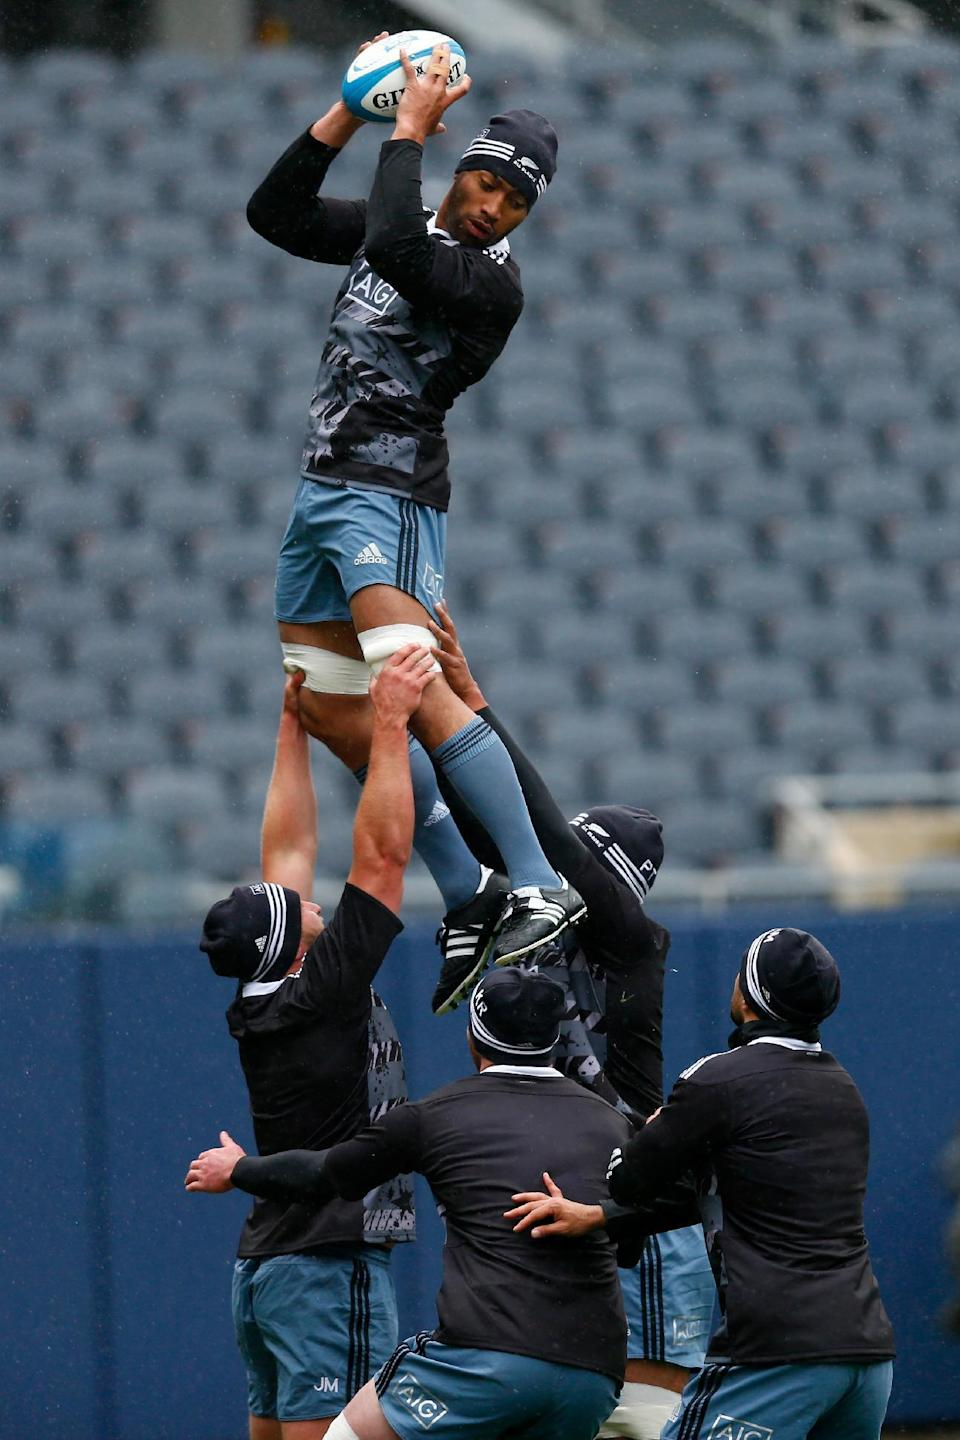 Victor Vito of New Zealand's All Blacks takes the ball in the line-out during the Captain's Run, at Soldier Field in Chicago, Illinois, on October 31, 2014 (AFP Photo/Phil Walter)